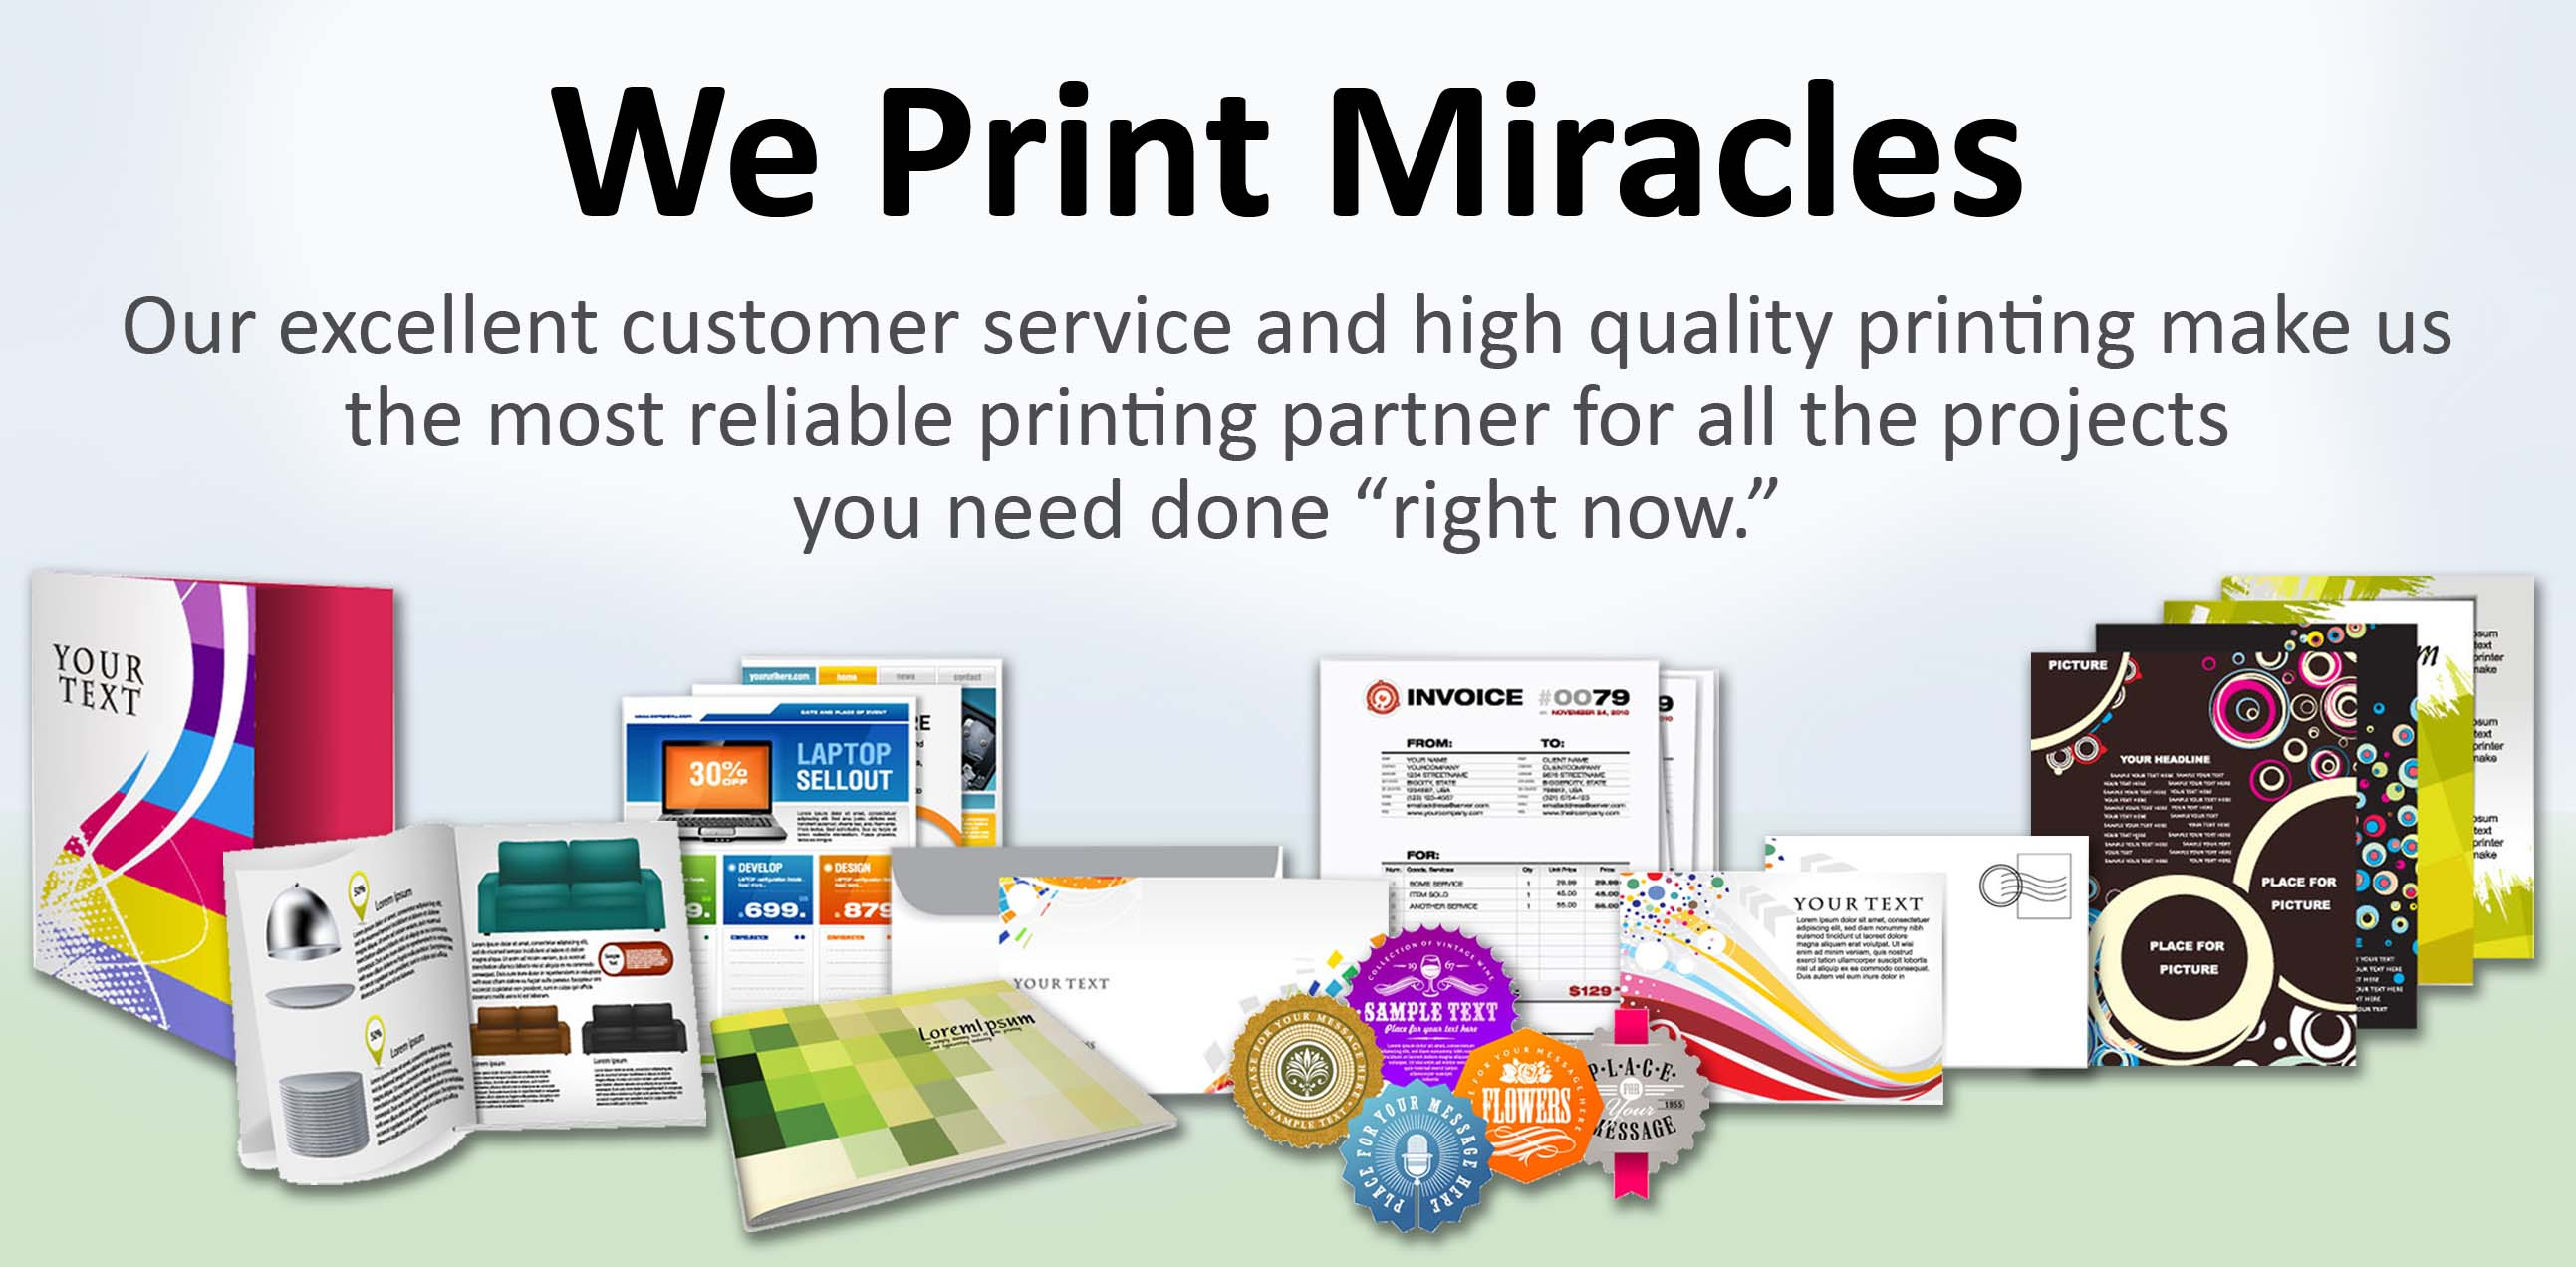 Los angeles printing company same day printing slb printing we print miracles reheart Choice Image